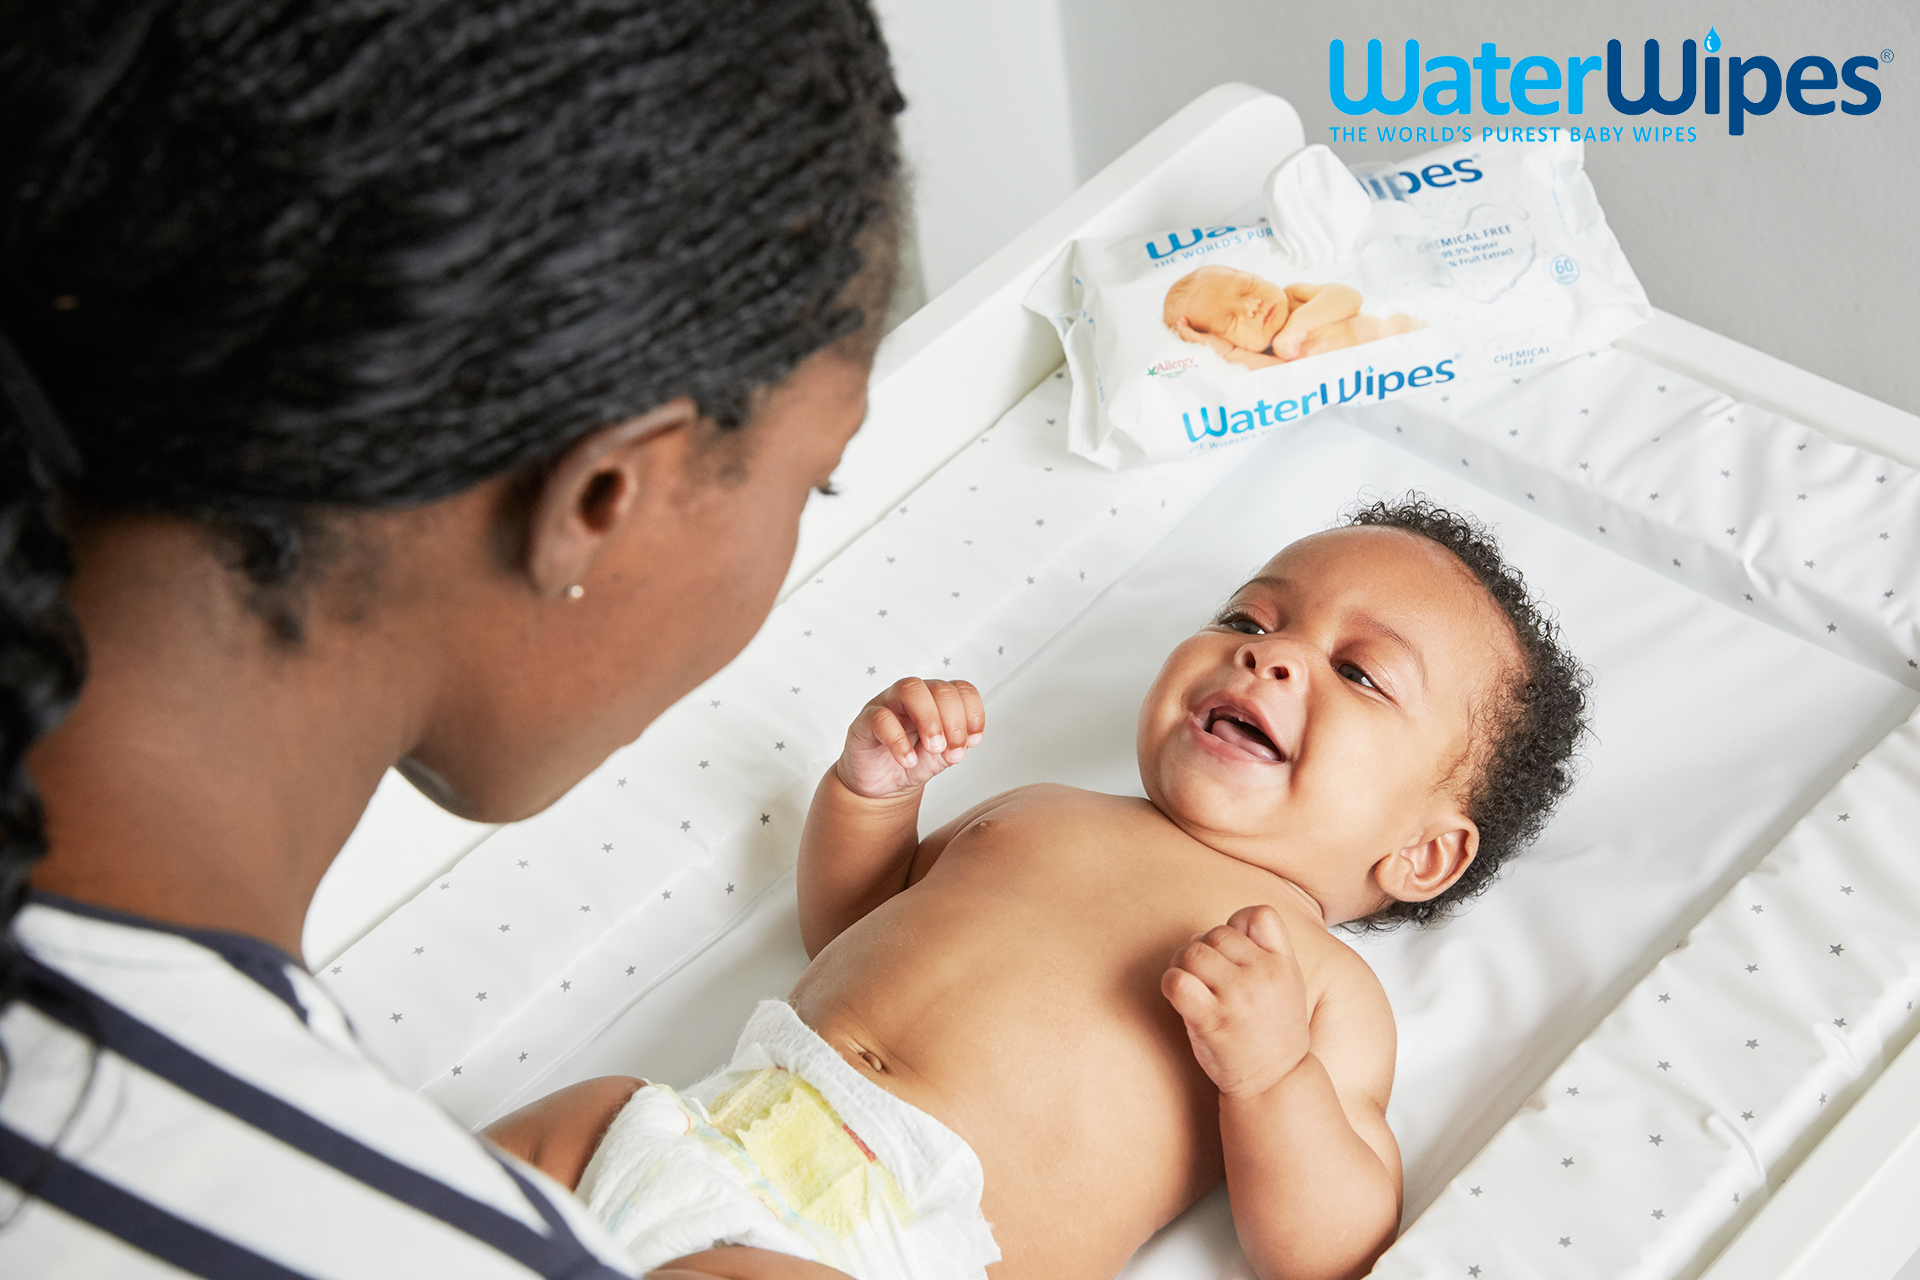 WaterWipes mother changing baby Emma Tunbridge